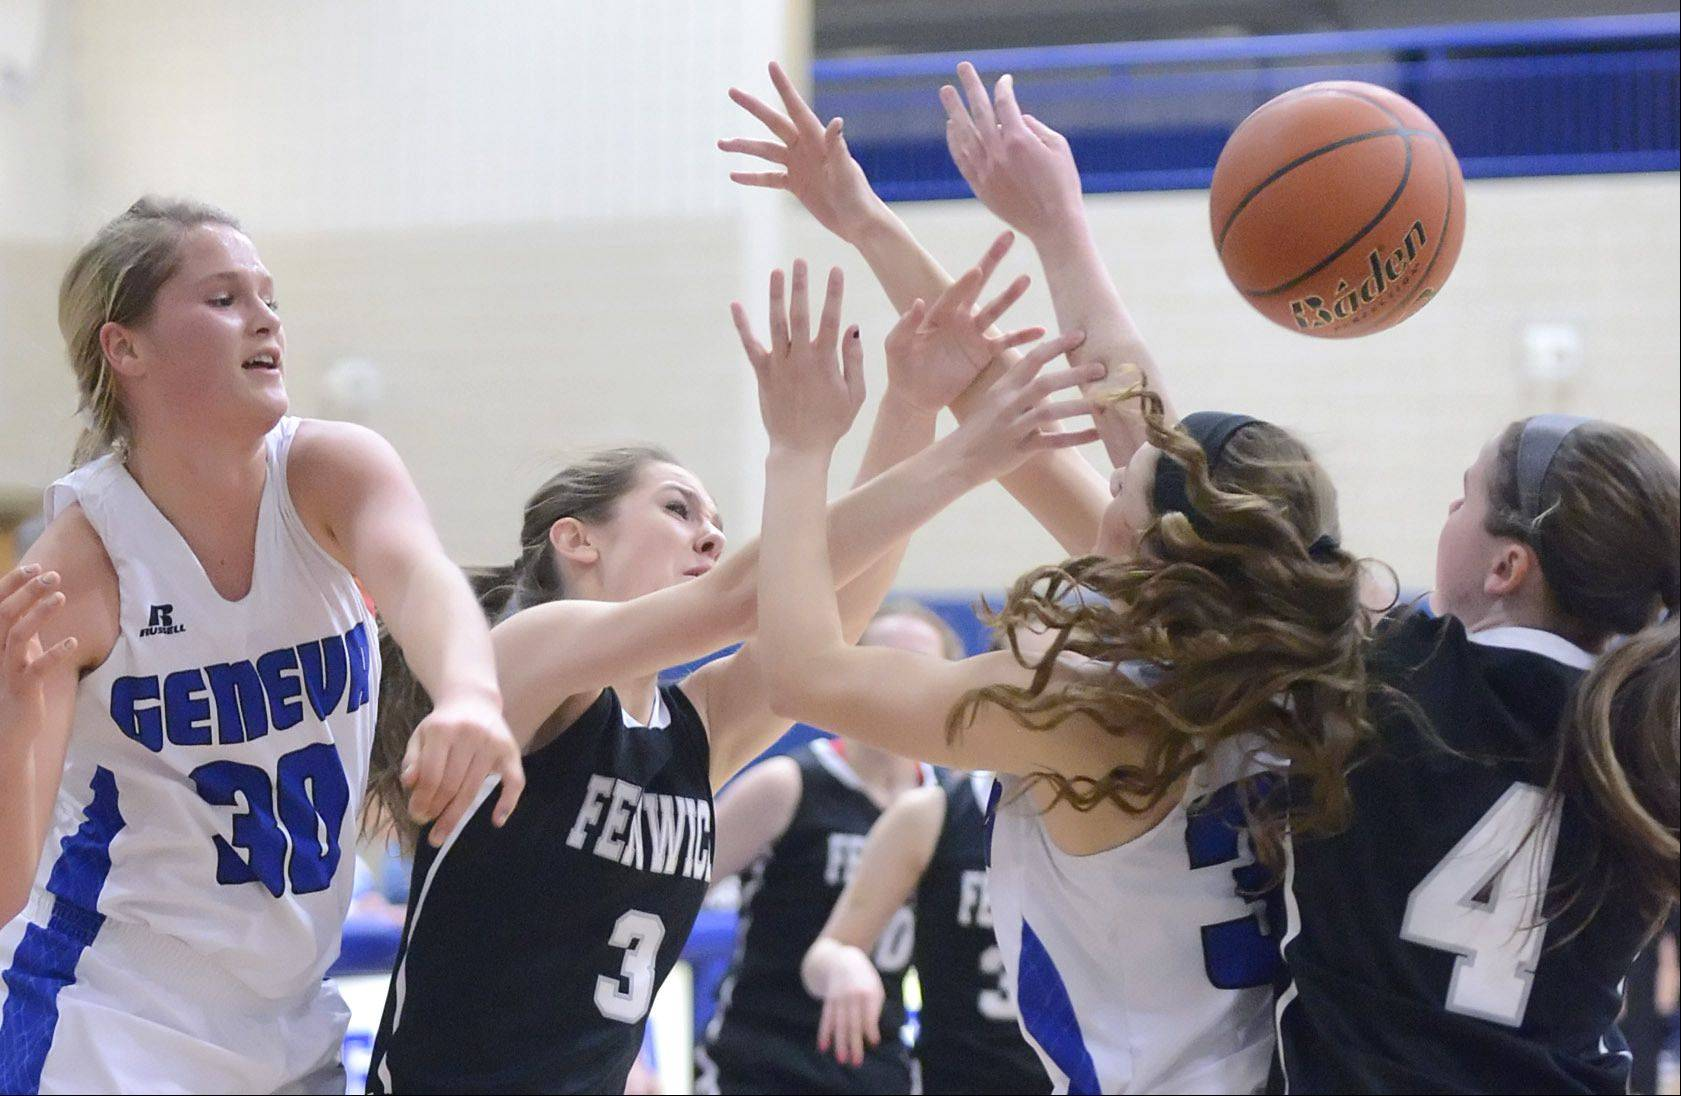 Images: Fenwick vs. Geneva girls basketball